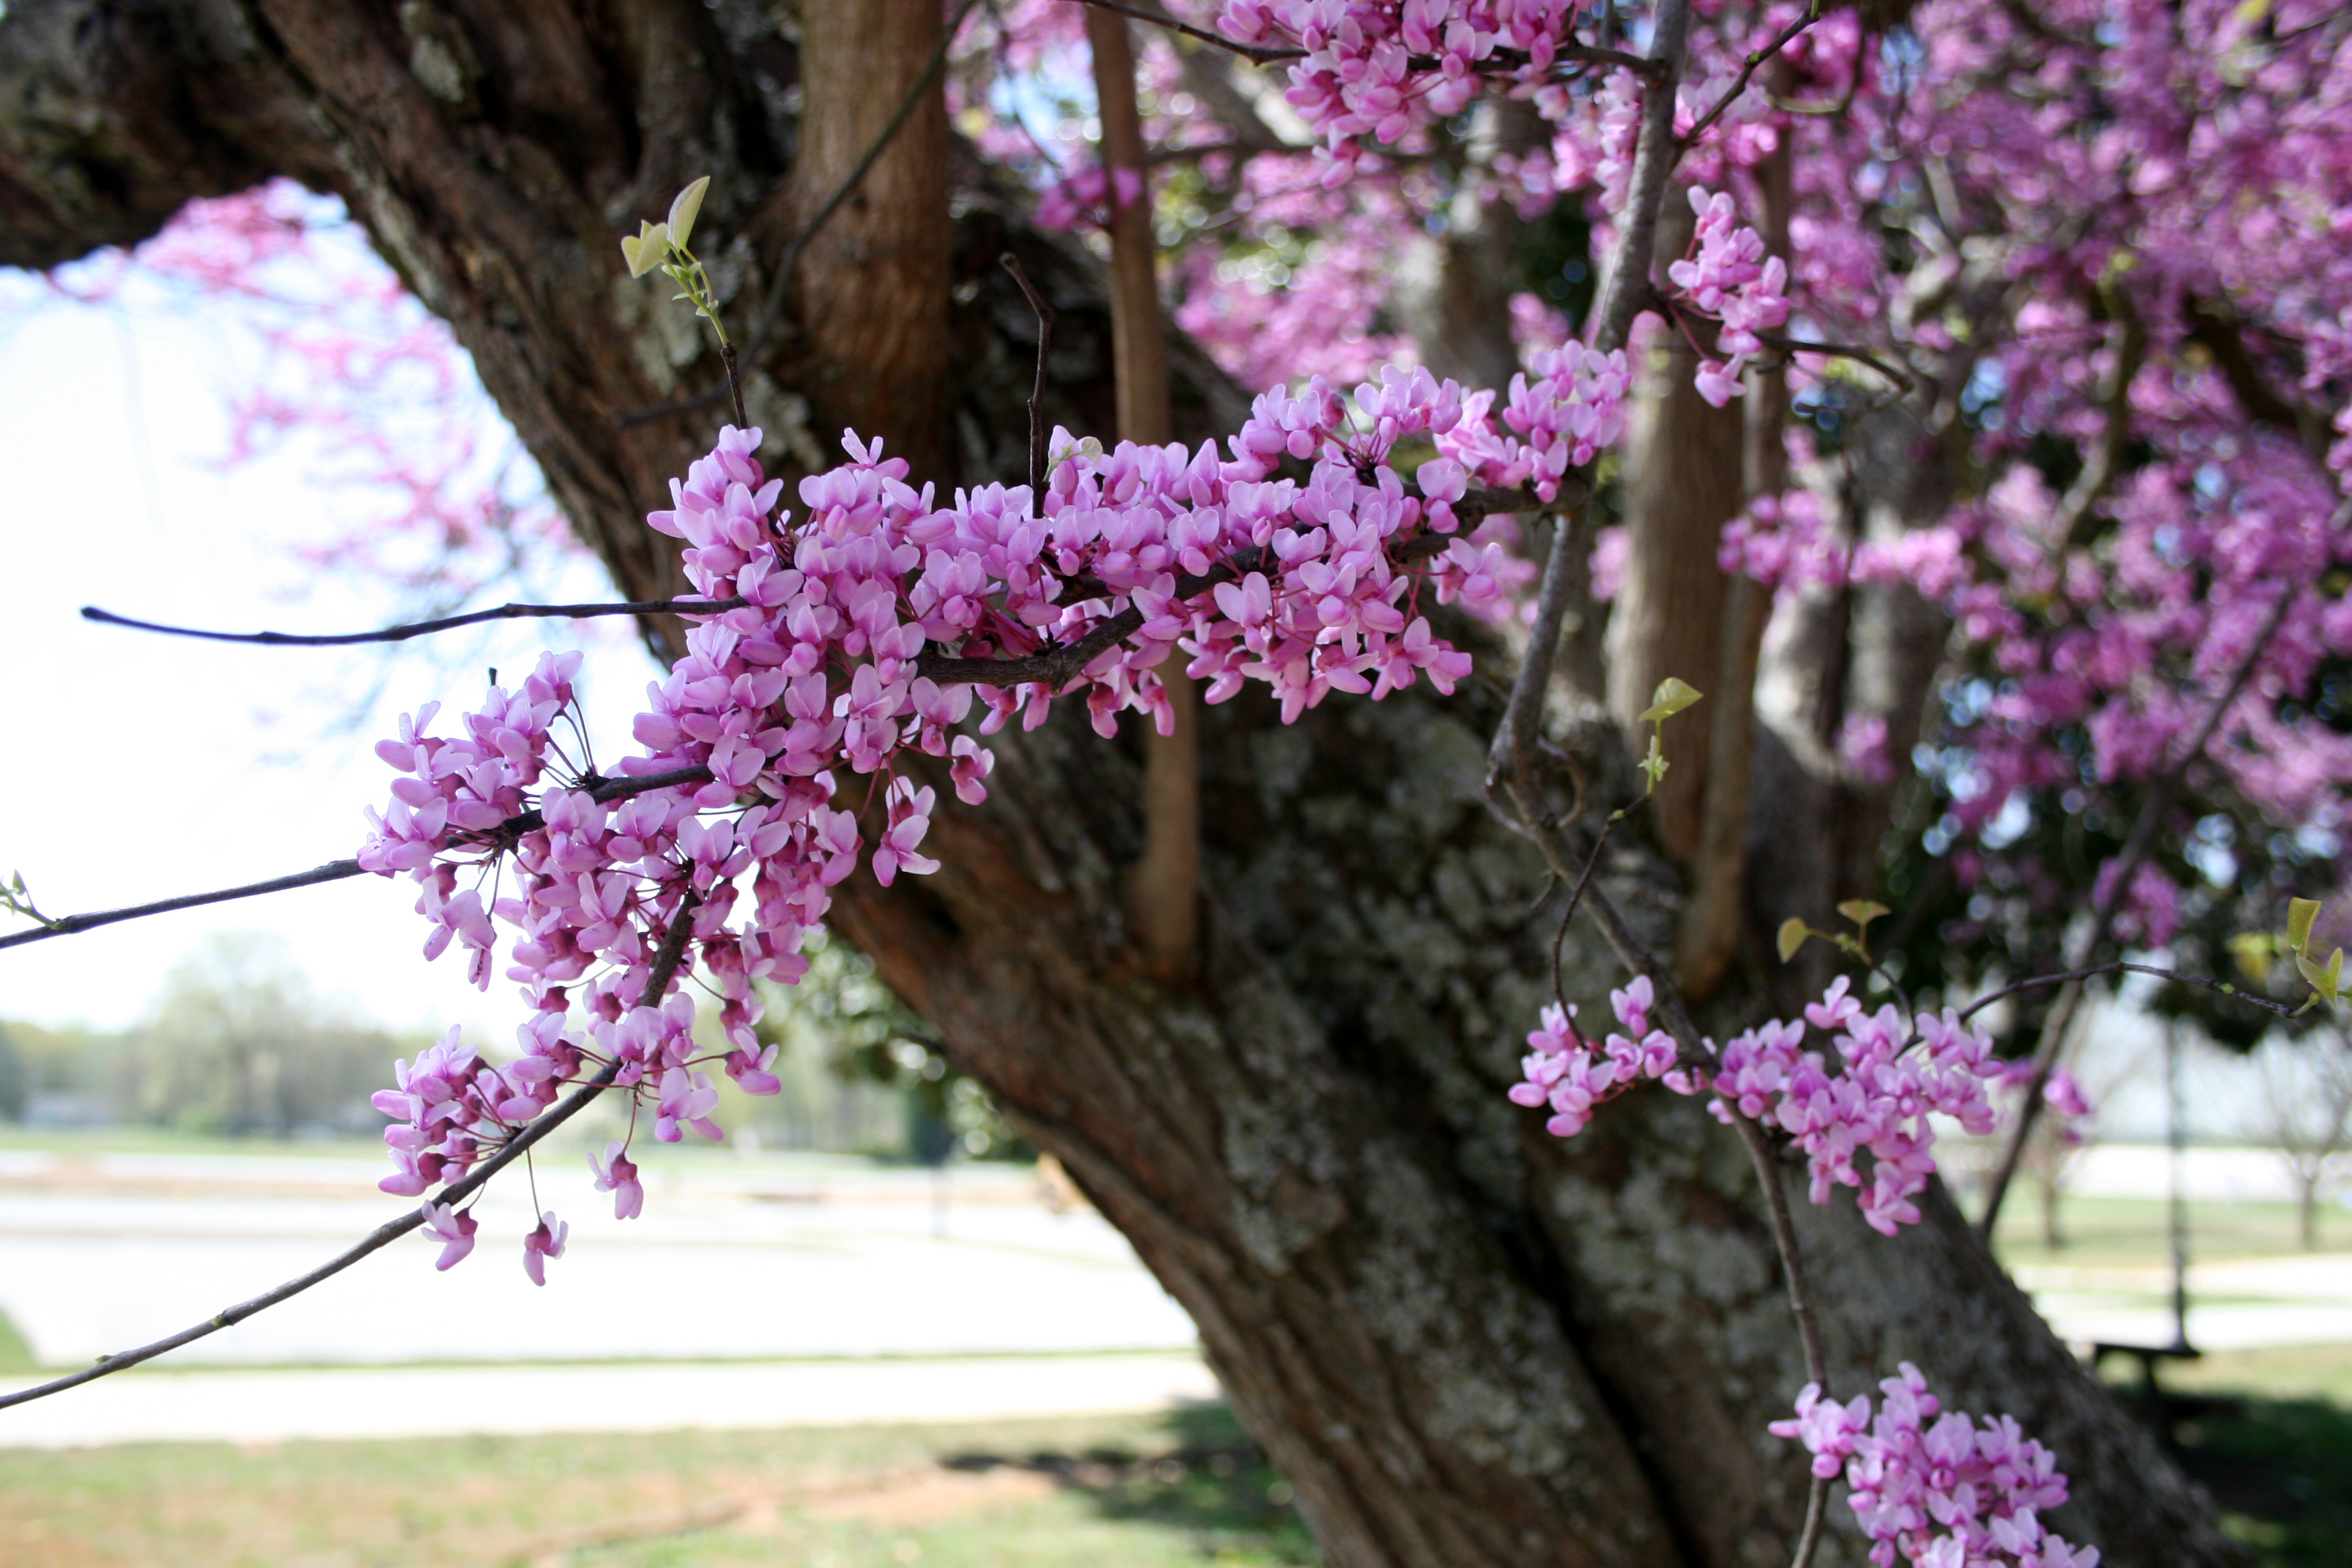 A redbud tree bursts with blooms on the University of Georgia campus in Griffin, Ga.  This spring's cooler, drier start resulted in flowering trees blooming a week to two weeks later than usual.